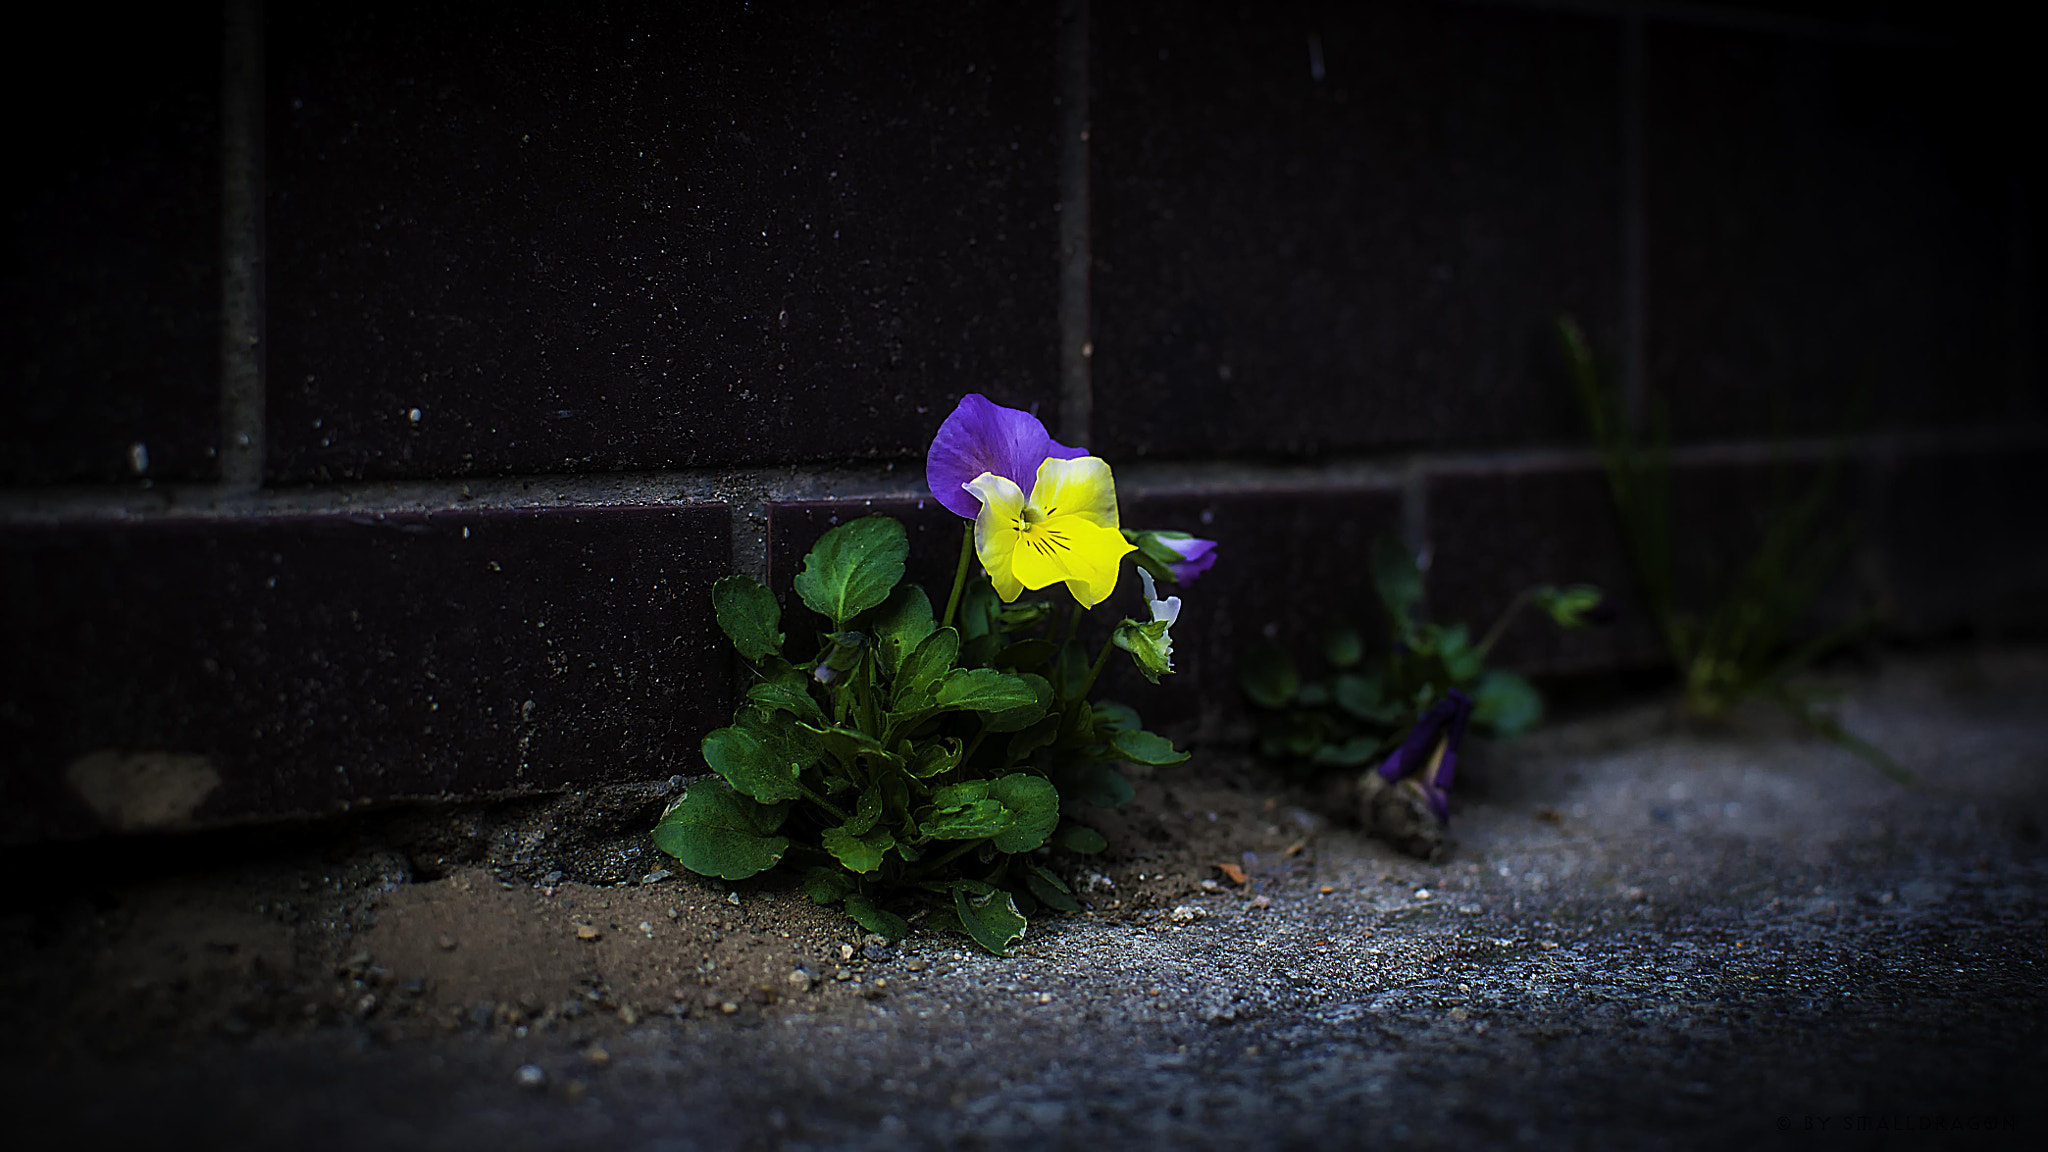 Photograph Flowers on the Wall 02 by Sven Reitis on 500px